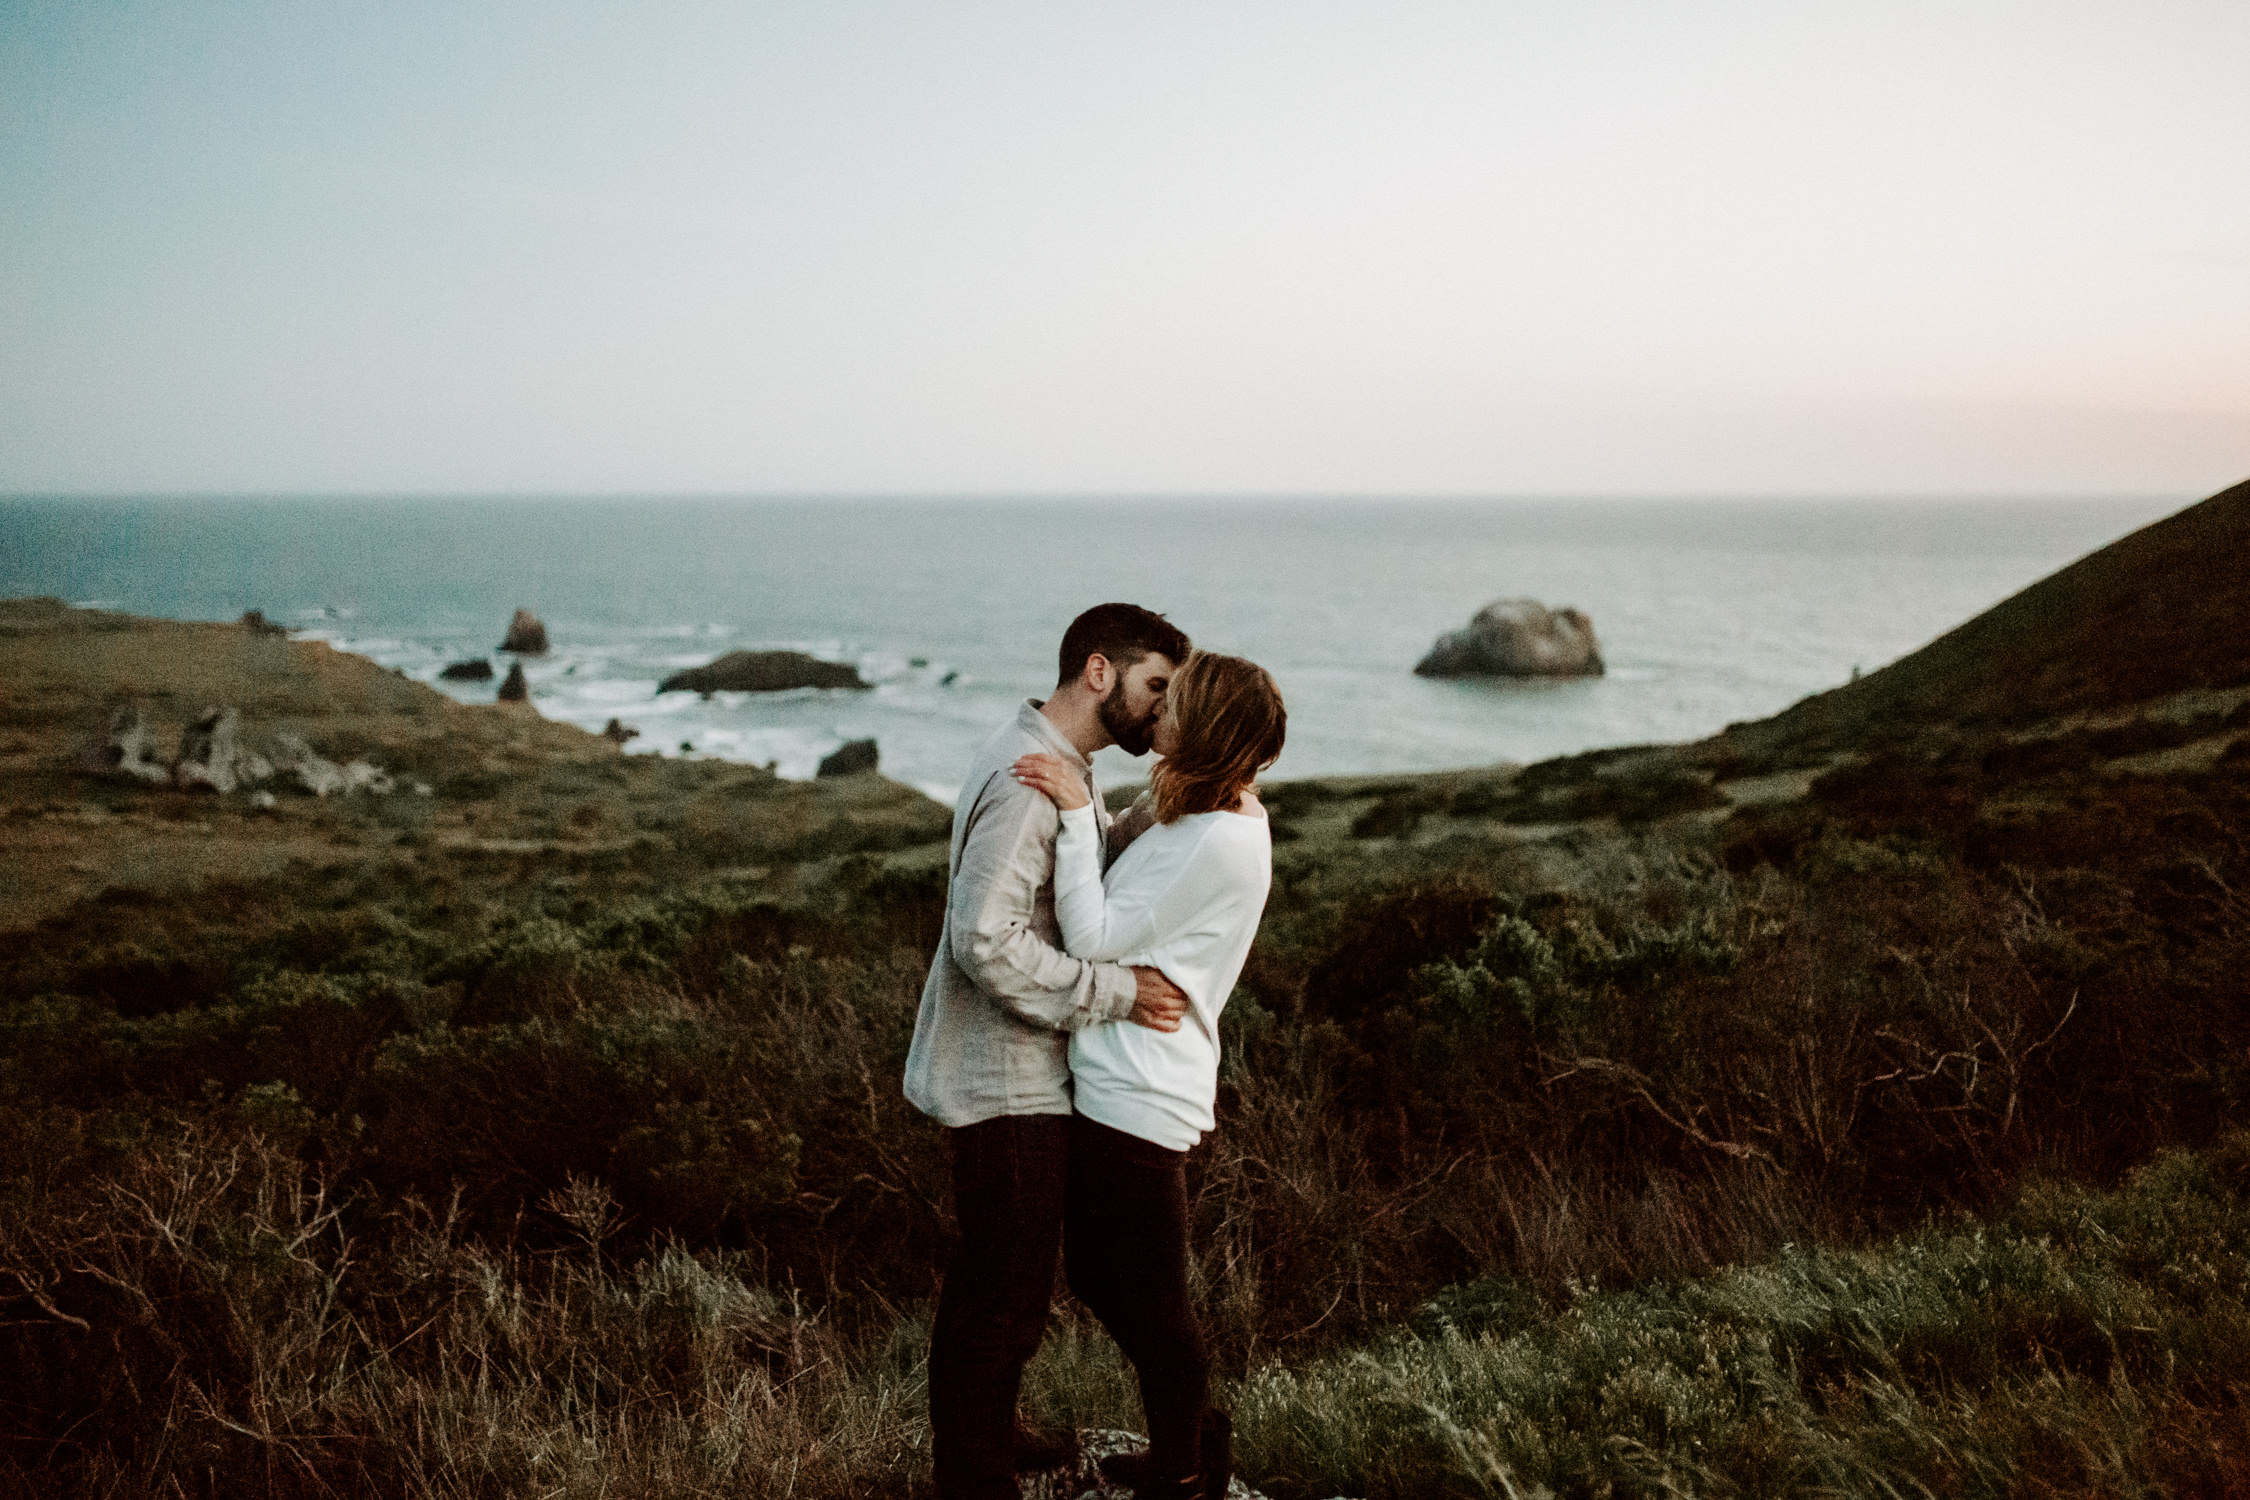 couple-intimate-engagement-session-jenner-california-104.jpg